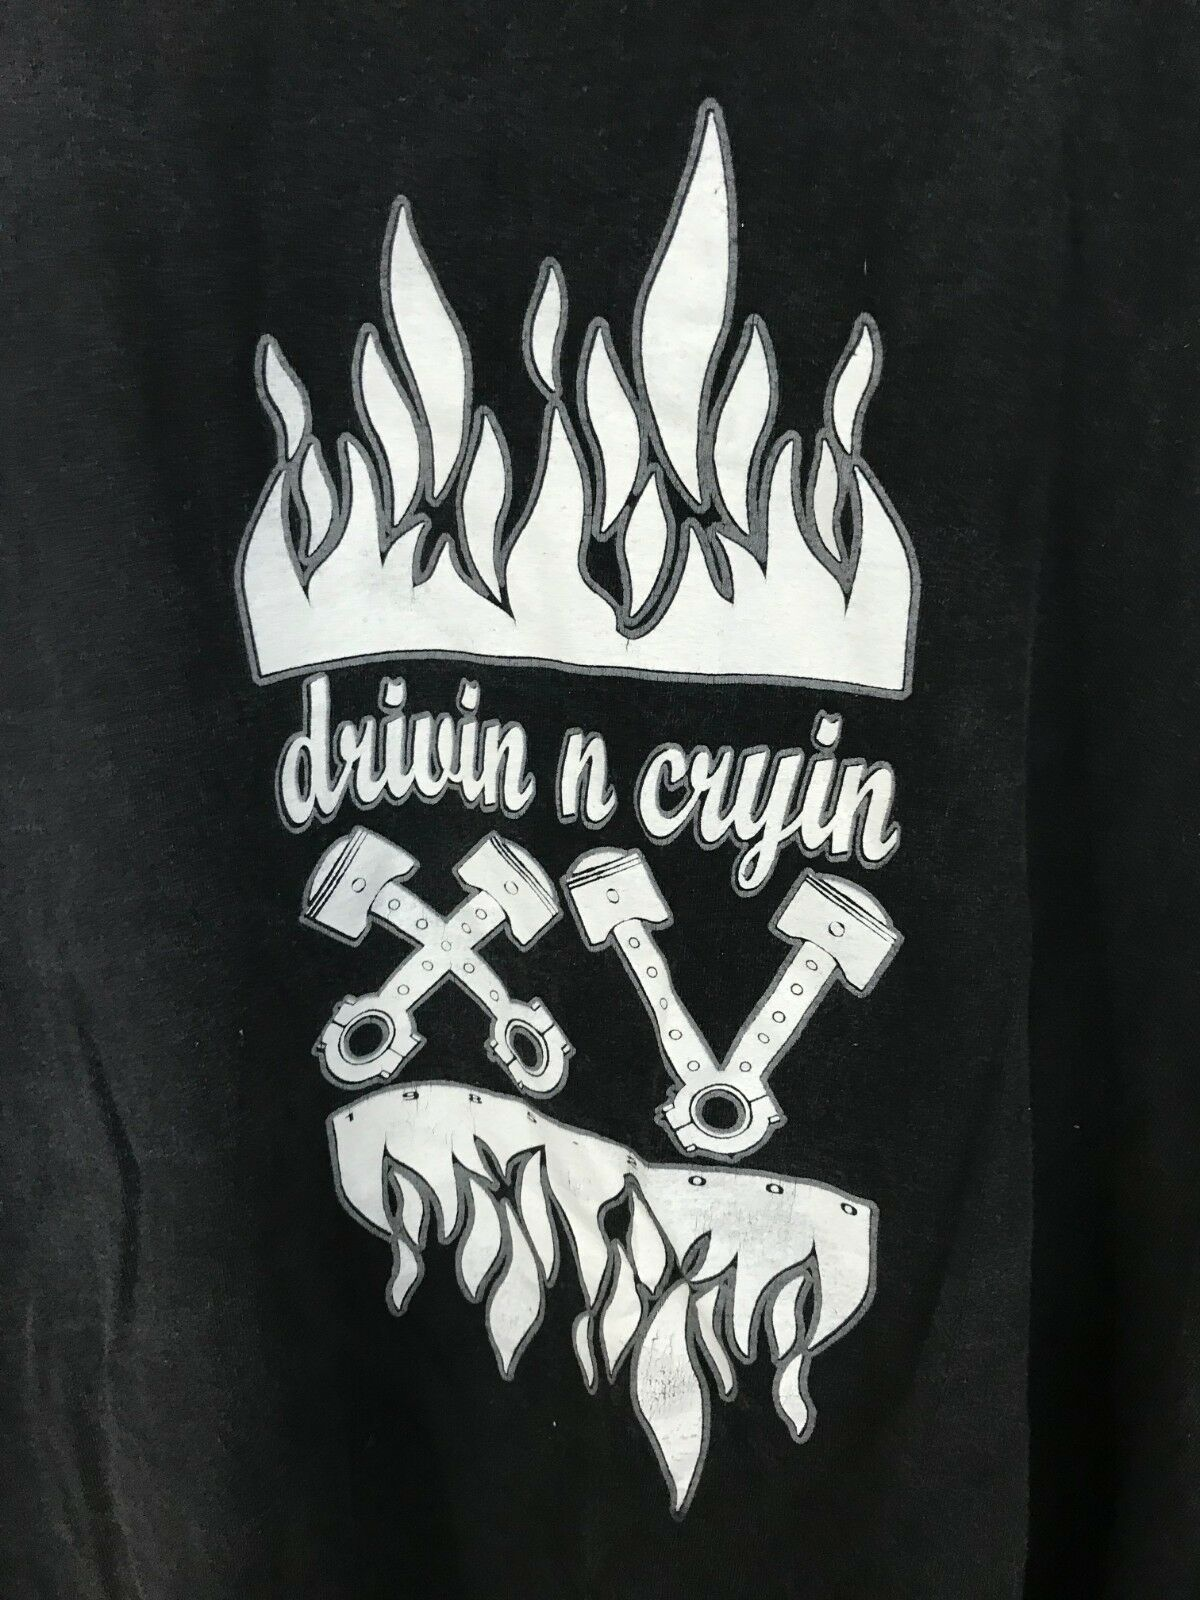 VTG Drivin N Cryin 15TH 1985-2000 15TH Cryin Anniversary Tour Long Sleeve Shirt Size L c352f3